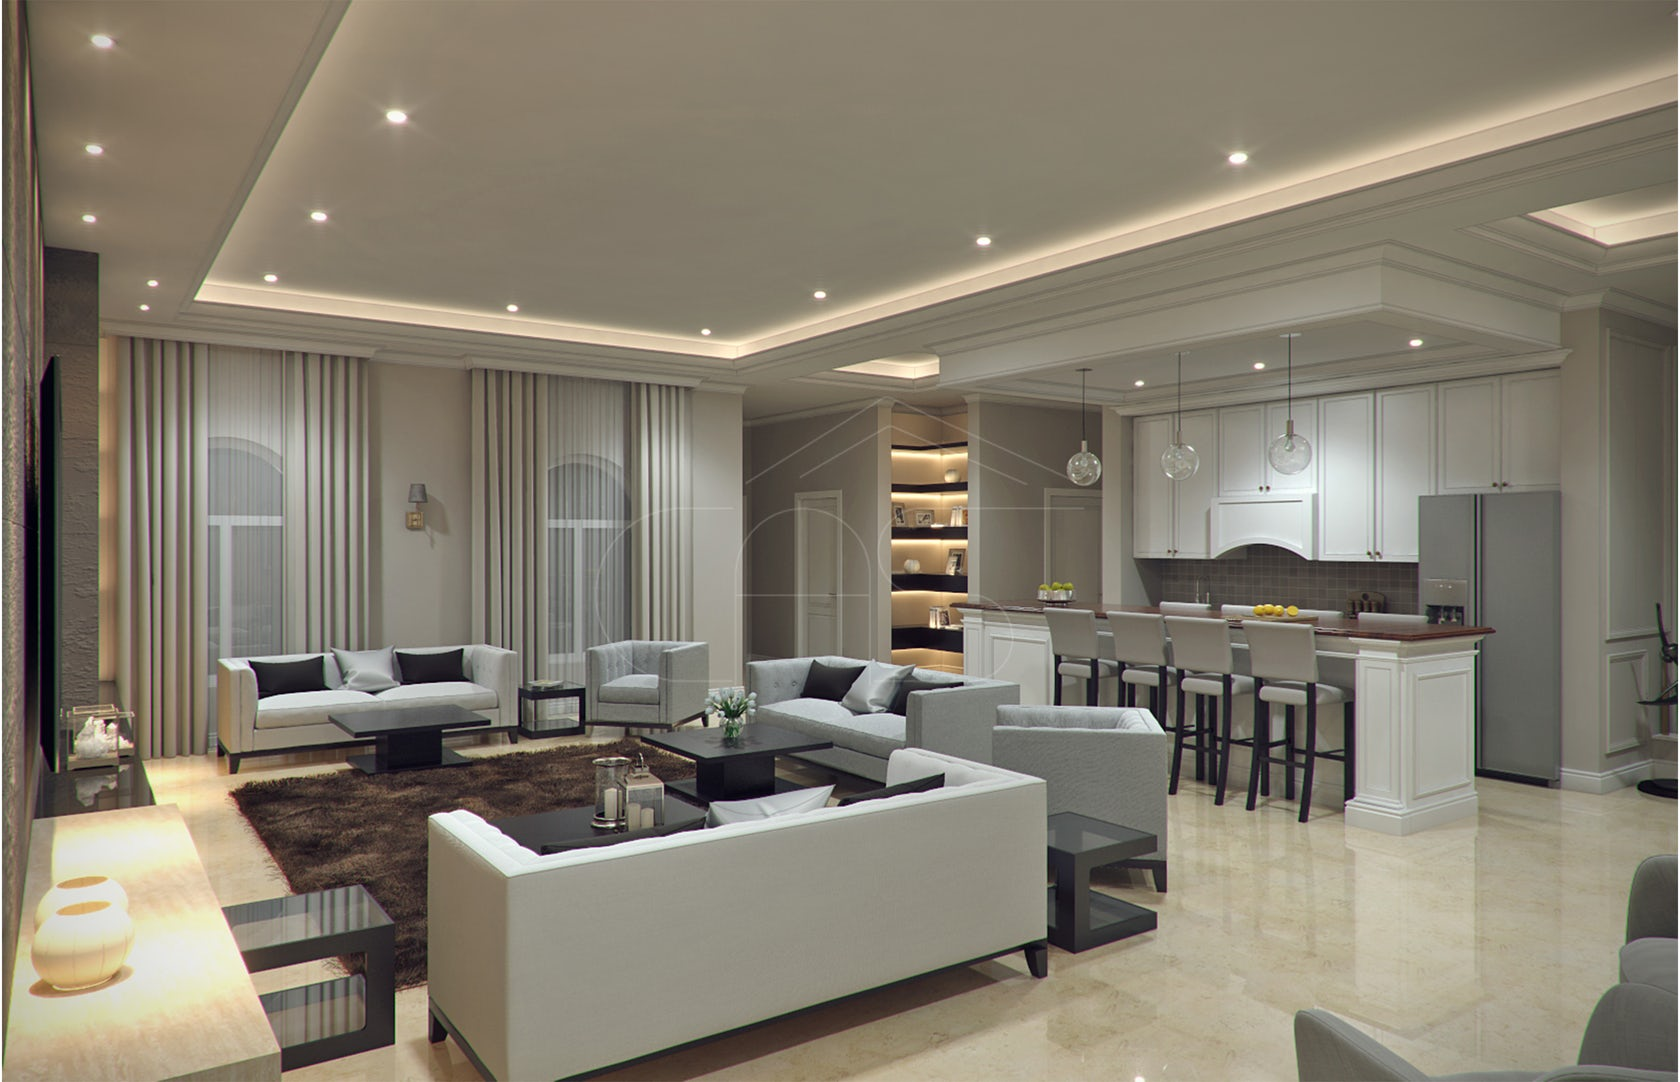 Modern classic villa interior design architizer - Interior design living room ideas modern ...